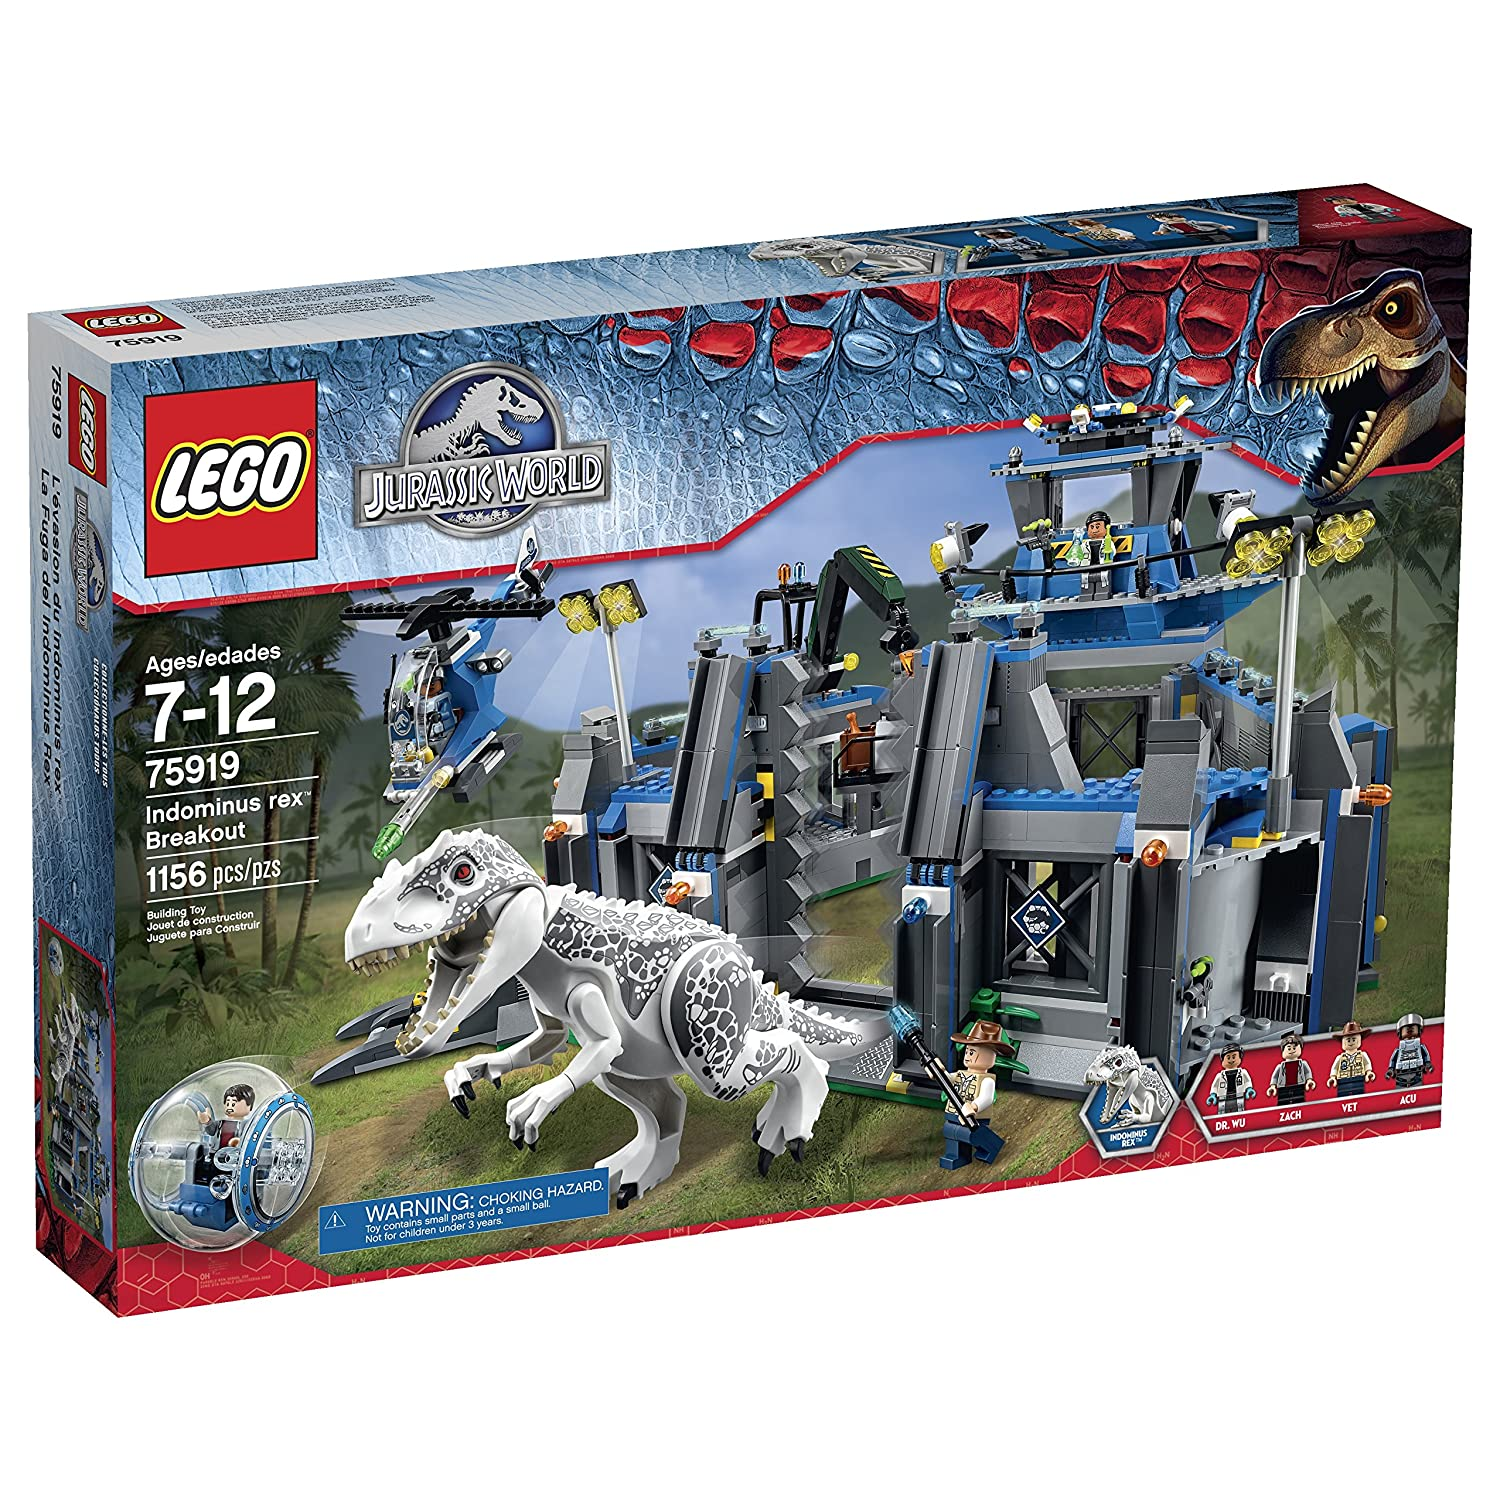 Top 9 Best Lego Jurassic Park Sets Reviews in 2021 12